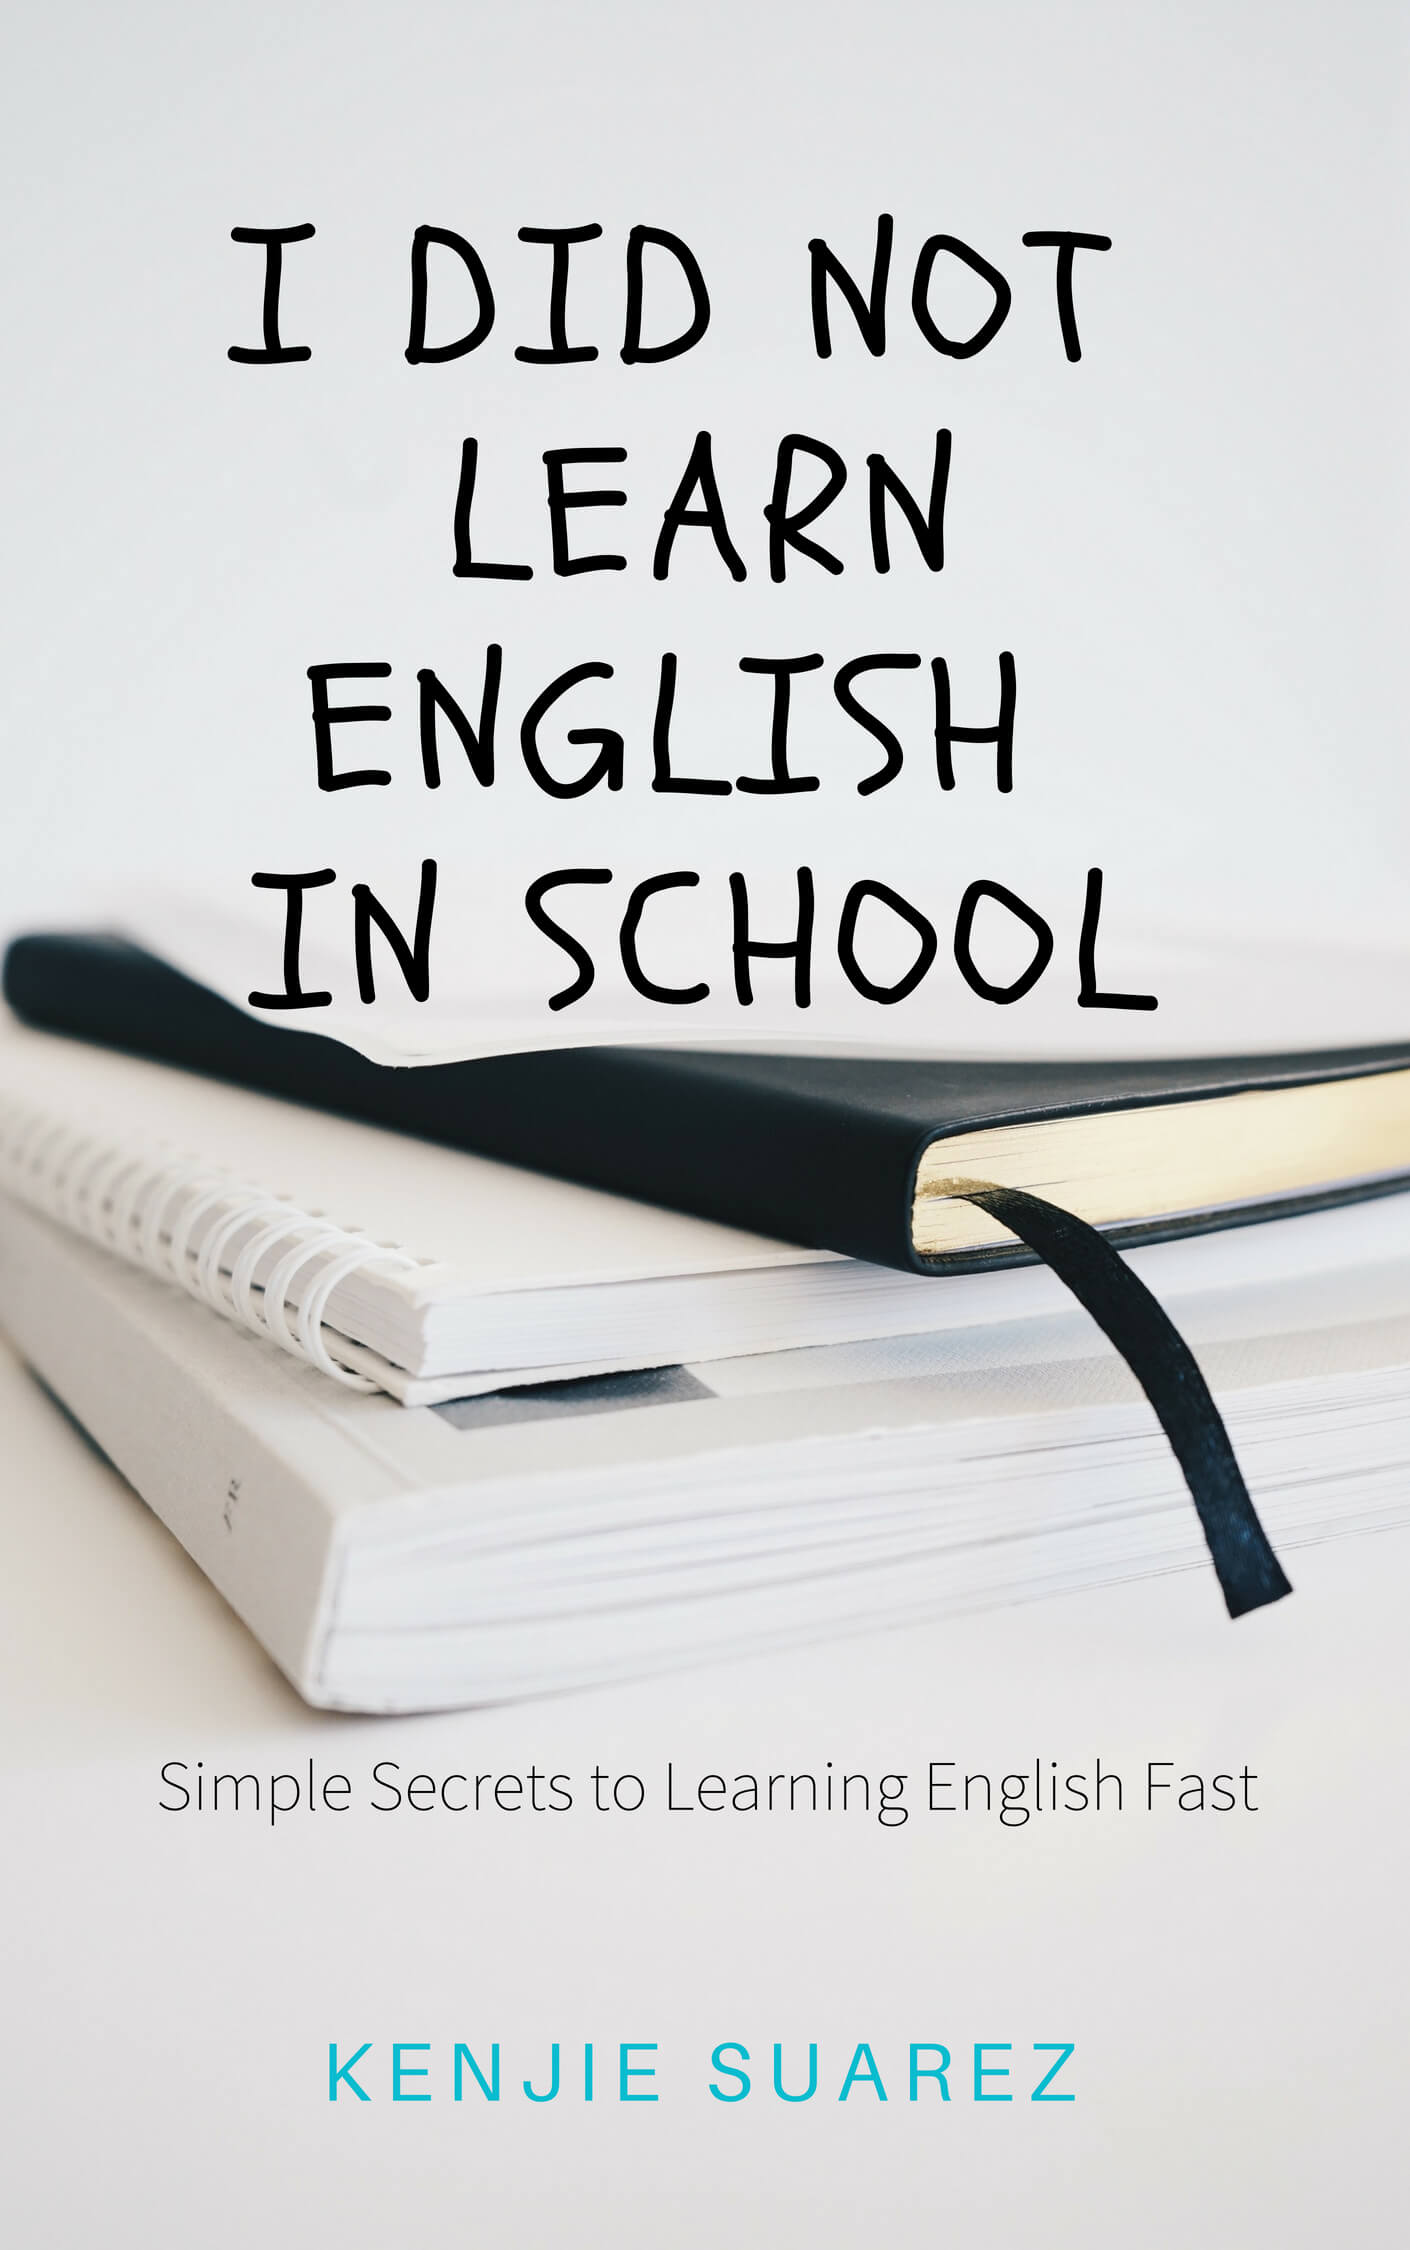 The Best ESL Book for non-native speakers